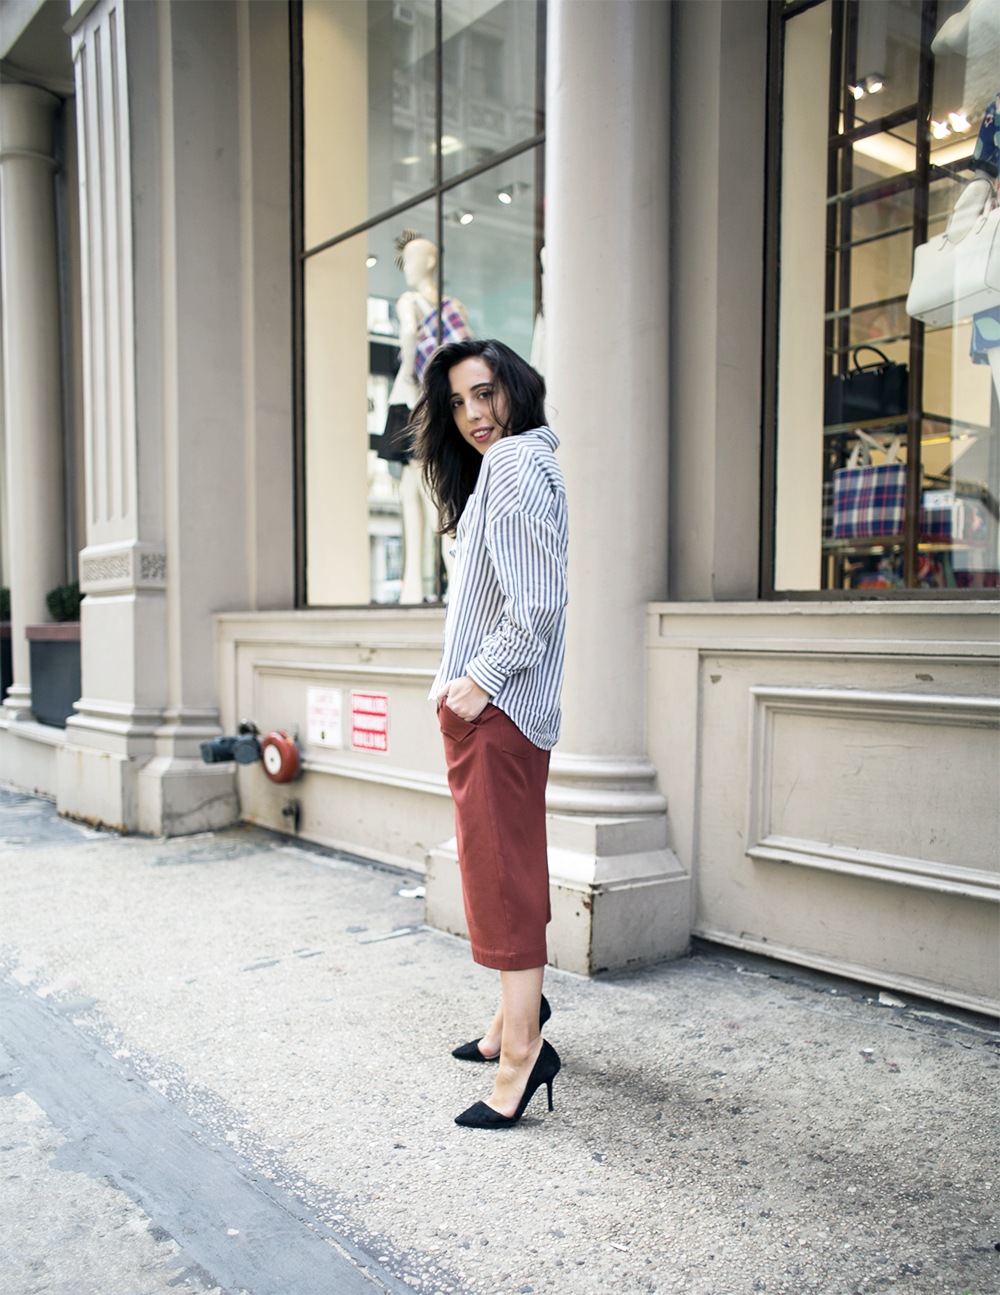 1_sania-claus-demina-outfit-new-york-city-acne-studios-culotte-esprit-shirt-zara-suede-pumps-soho-2015_5